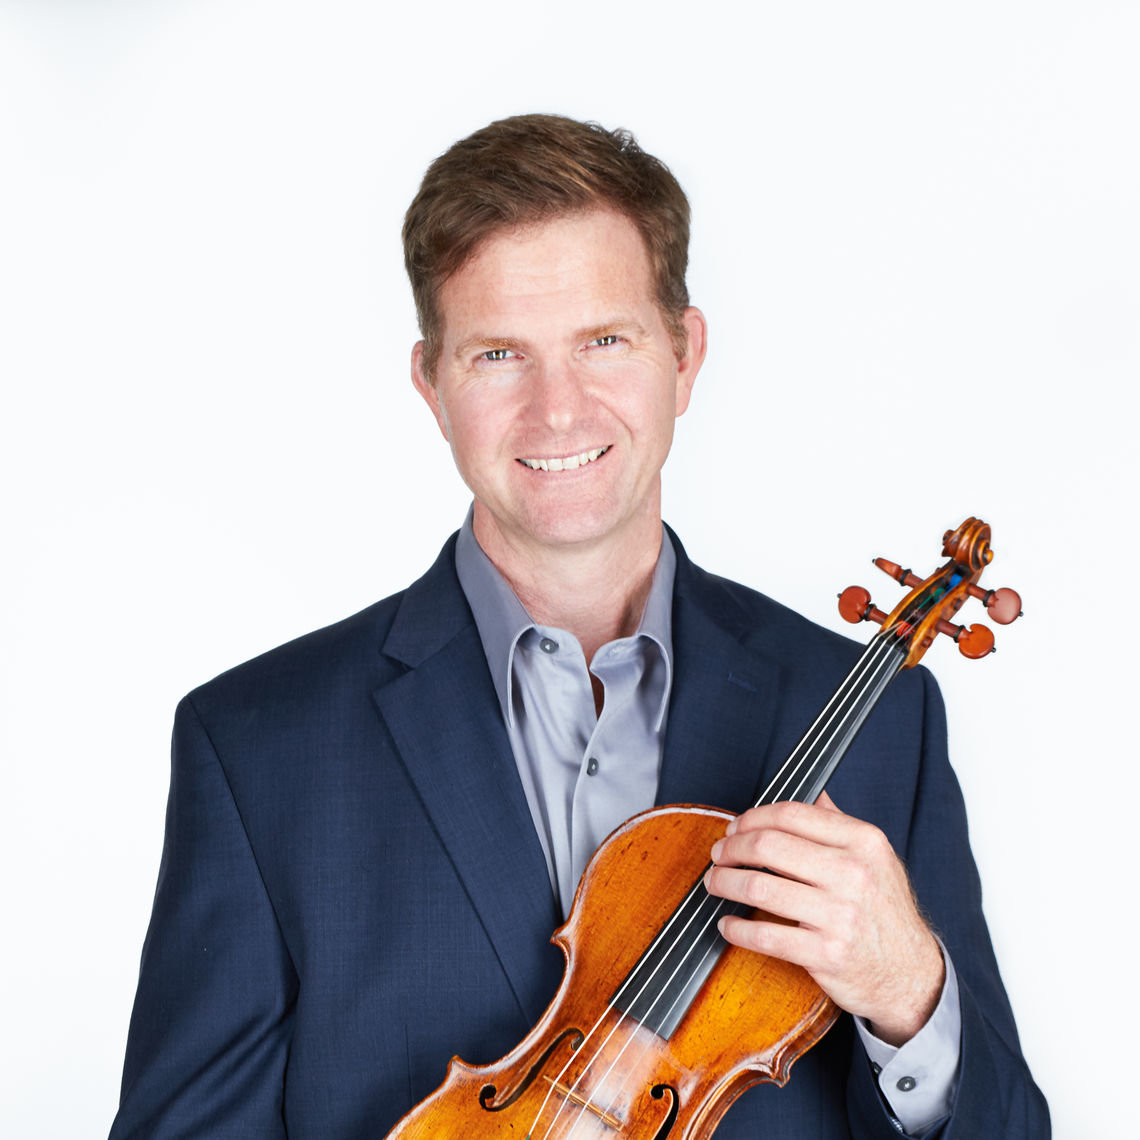 In addition to his antiques business, Michael is a violinist who earned a master's degree in music (violin performance) from Rutgers University and put on monthly concerts at Christ Ascension Lutheran Church, 8300 Germantown Ave. in Chestnut Hill, until the pandemic hit.